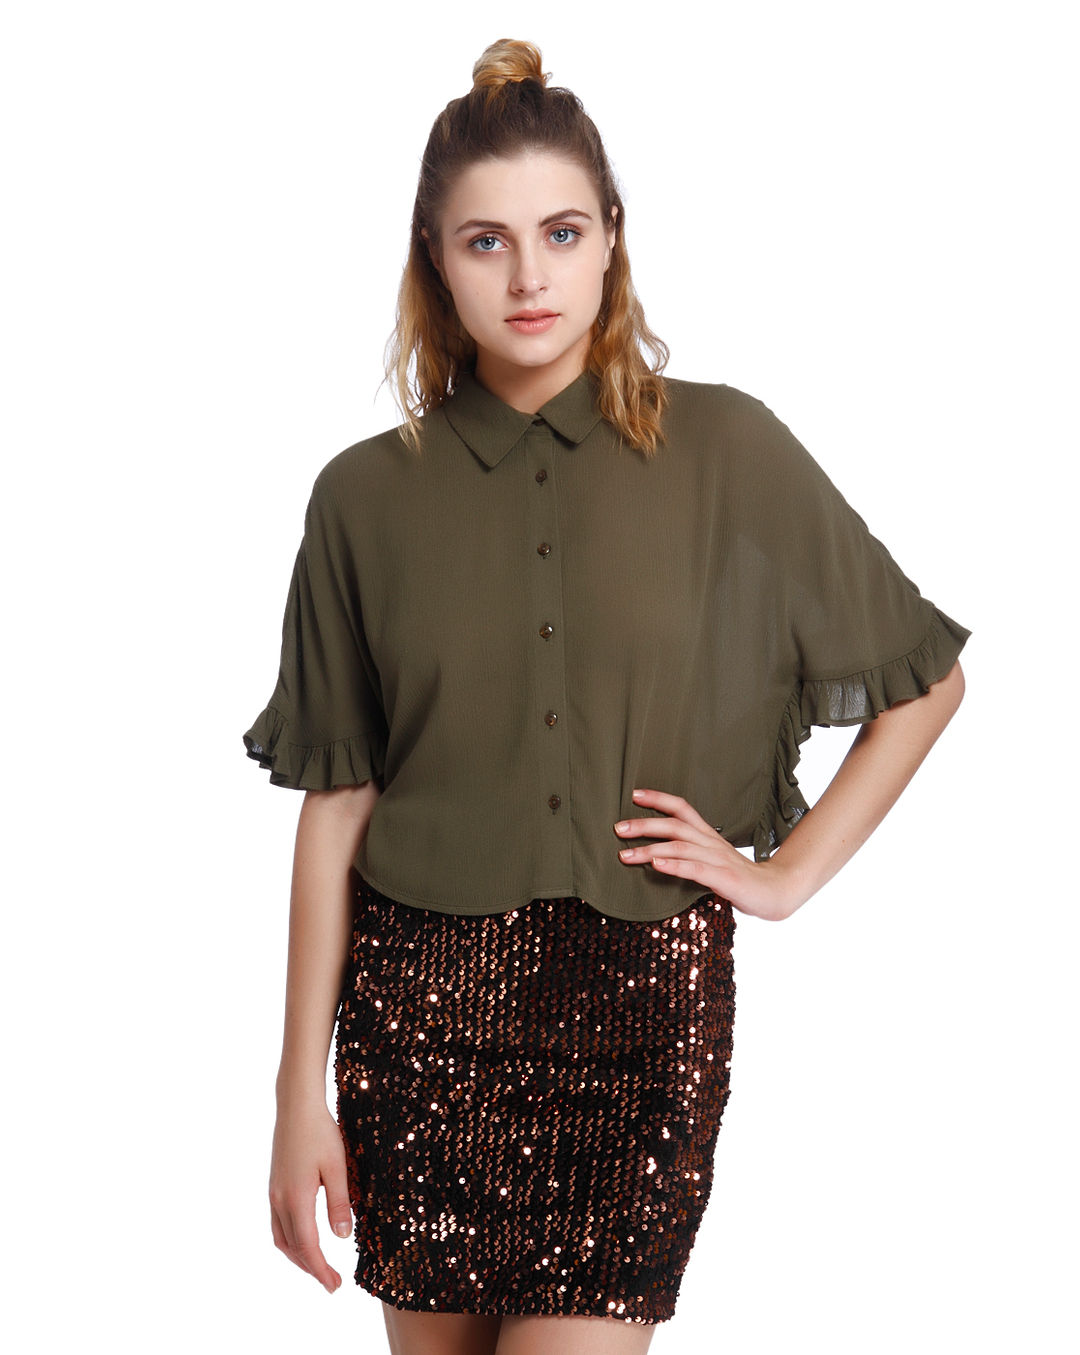 38b9f7d8f82 Buy ONLY Olive Green Frill Flared Sleeves Shirt Online | ONLY